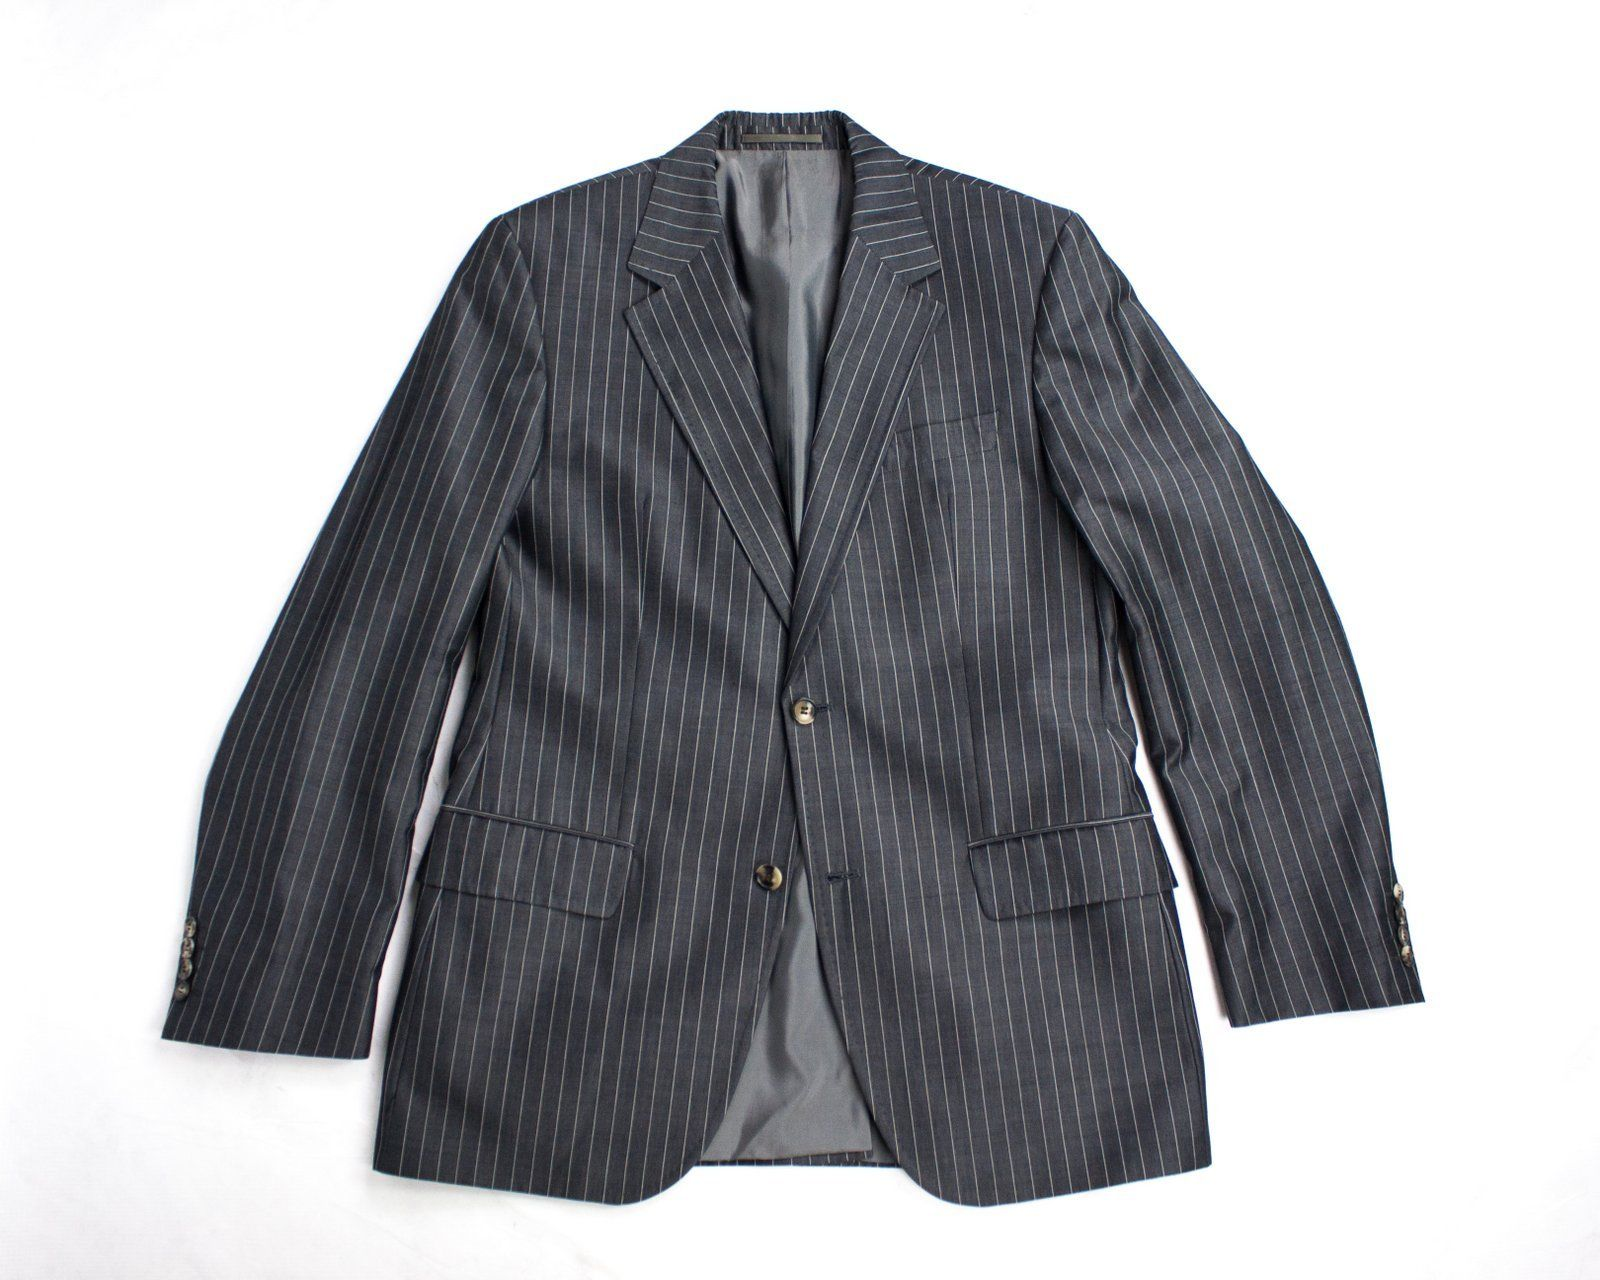 HUGO BOSS Wool-Cotton Striped Blazer. US,UK 40R/EU 50 - secondfirst